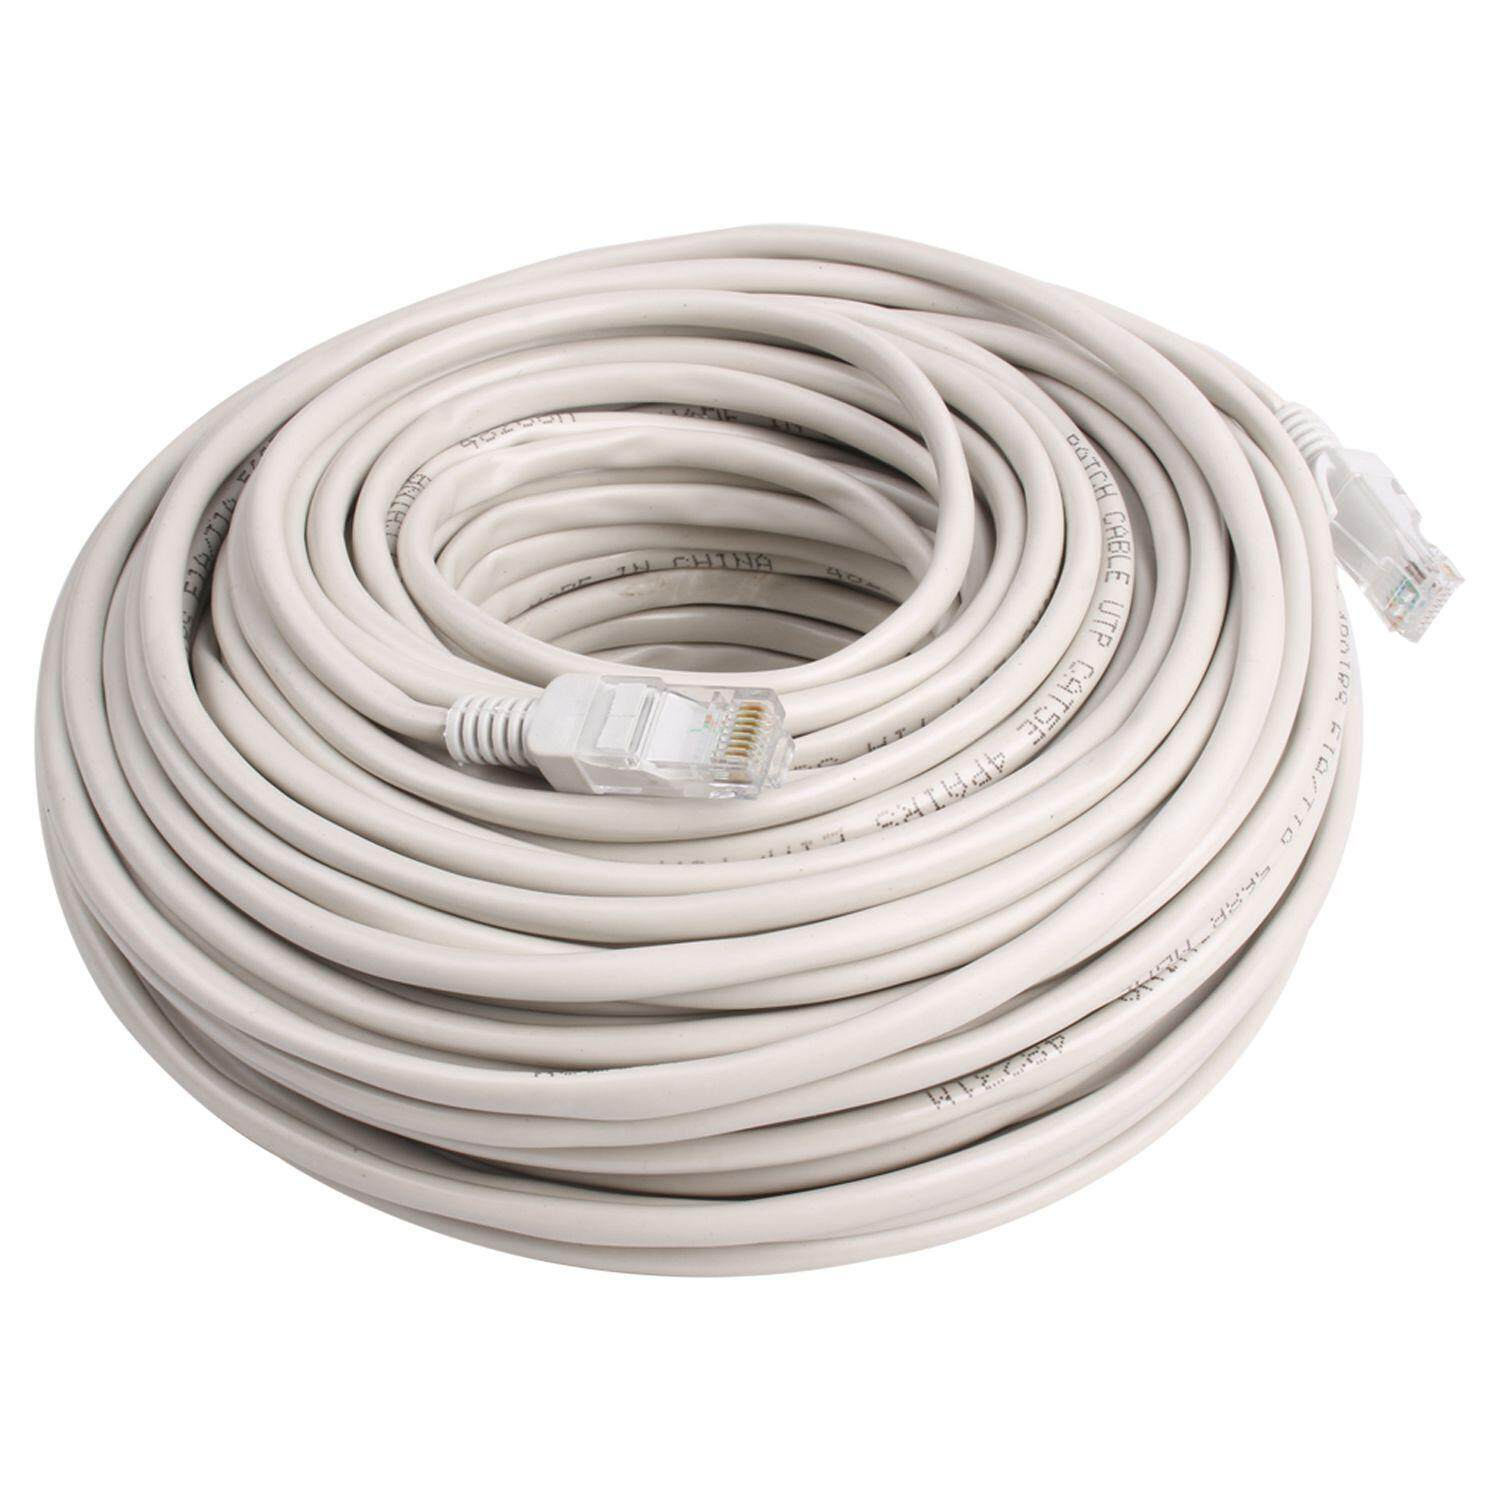 Buy Sell Cheapest 40m Ethernet Cable Best Quality Product Deals Straight Through Network Wiring Rj45 Cat5 Lan Patch Lead Gray White